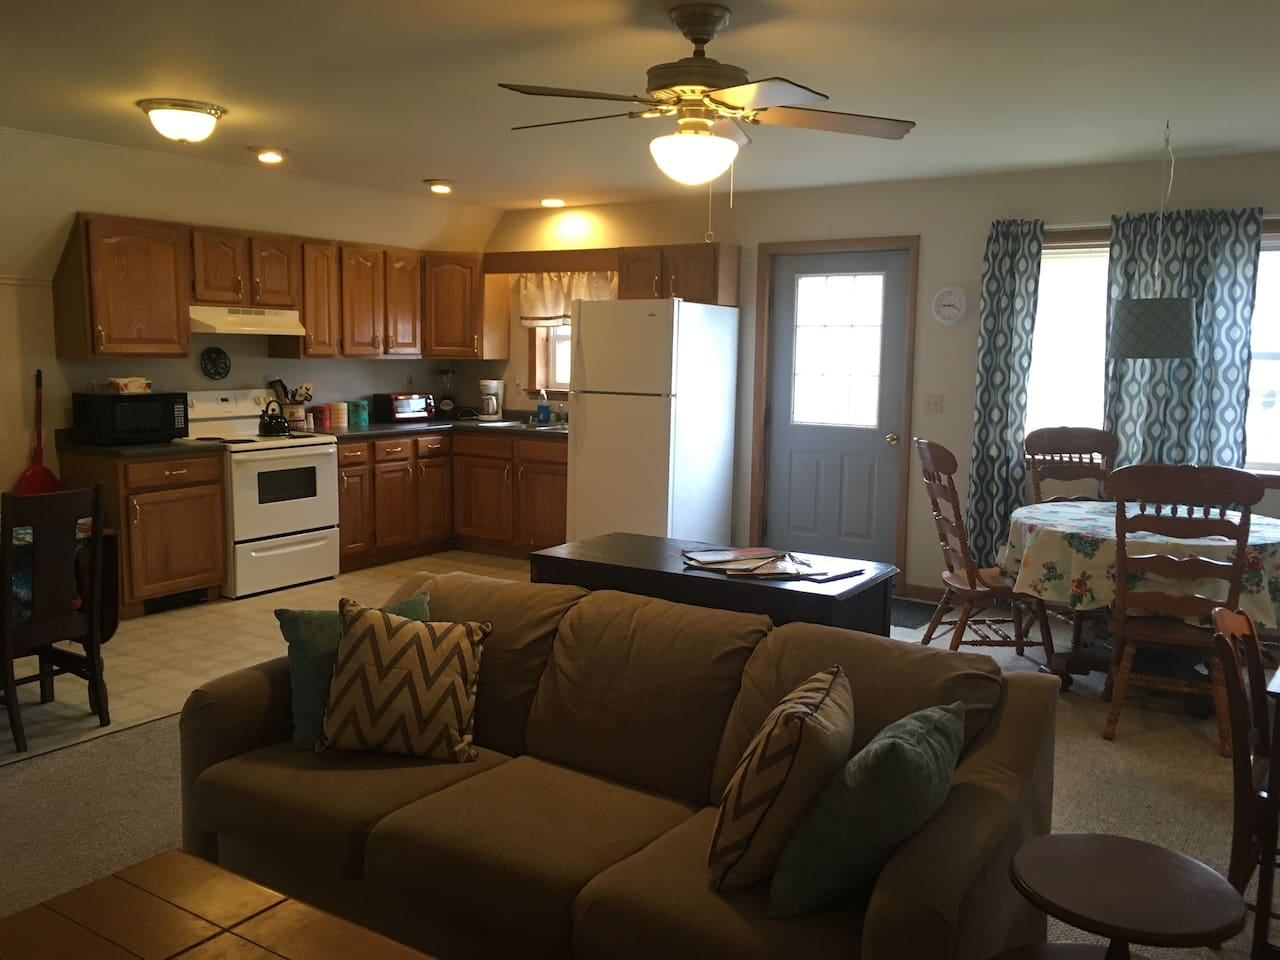 Kitchen/Living/Dining area